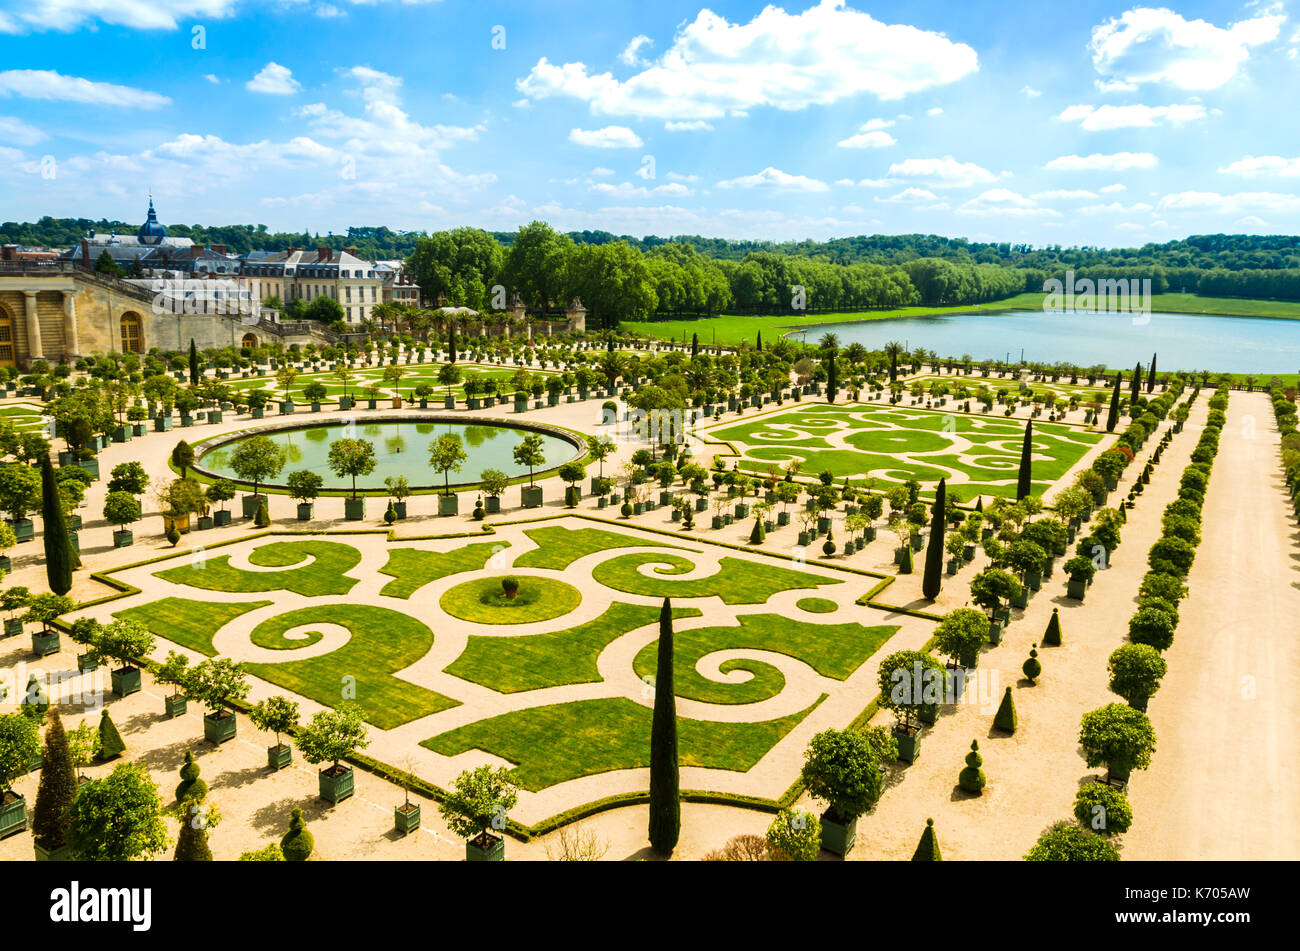 Versailles, France: Gardens of the Versailles Palace near Paris, France. - Stock Image